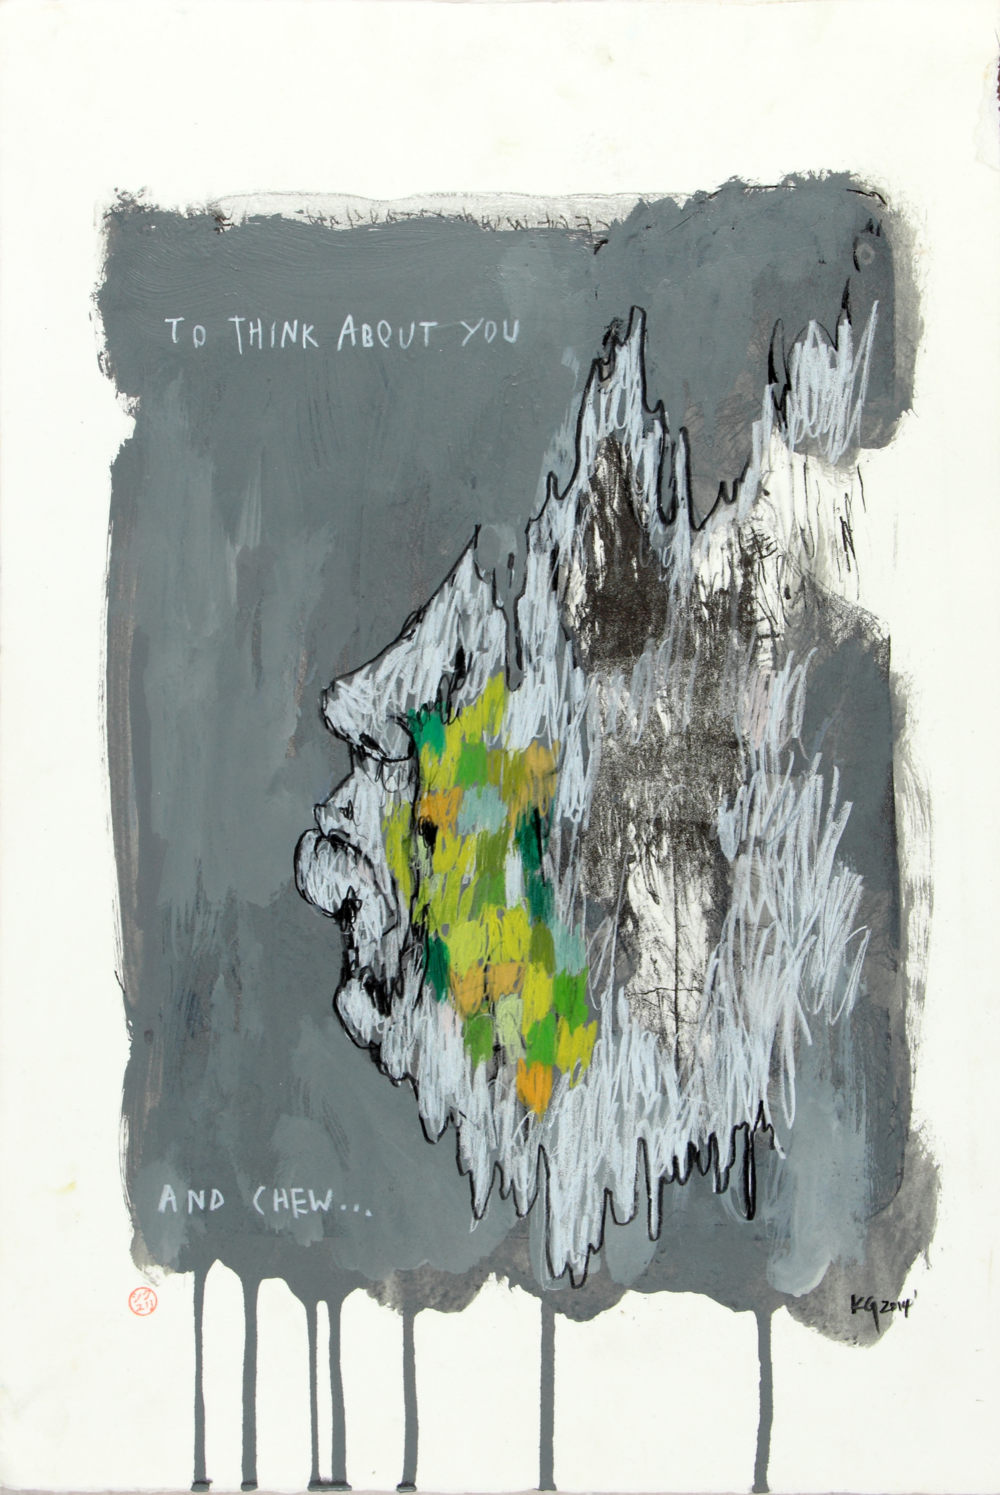 To Think About You and Chew, 2014   Acrylic on paper   20 x 13 3/4 in.